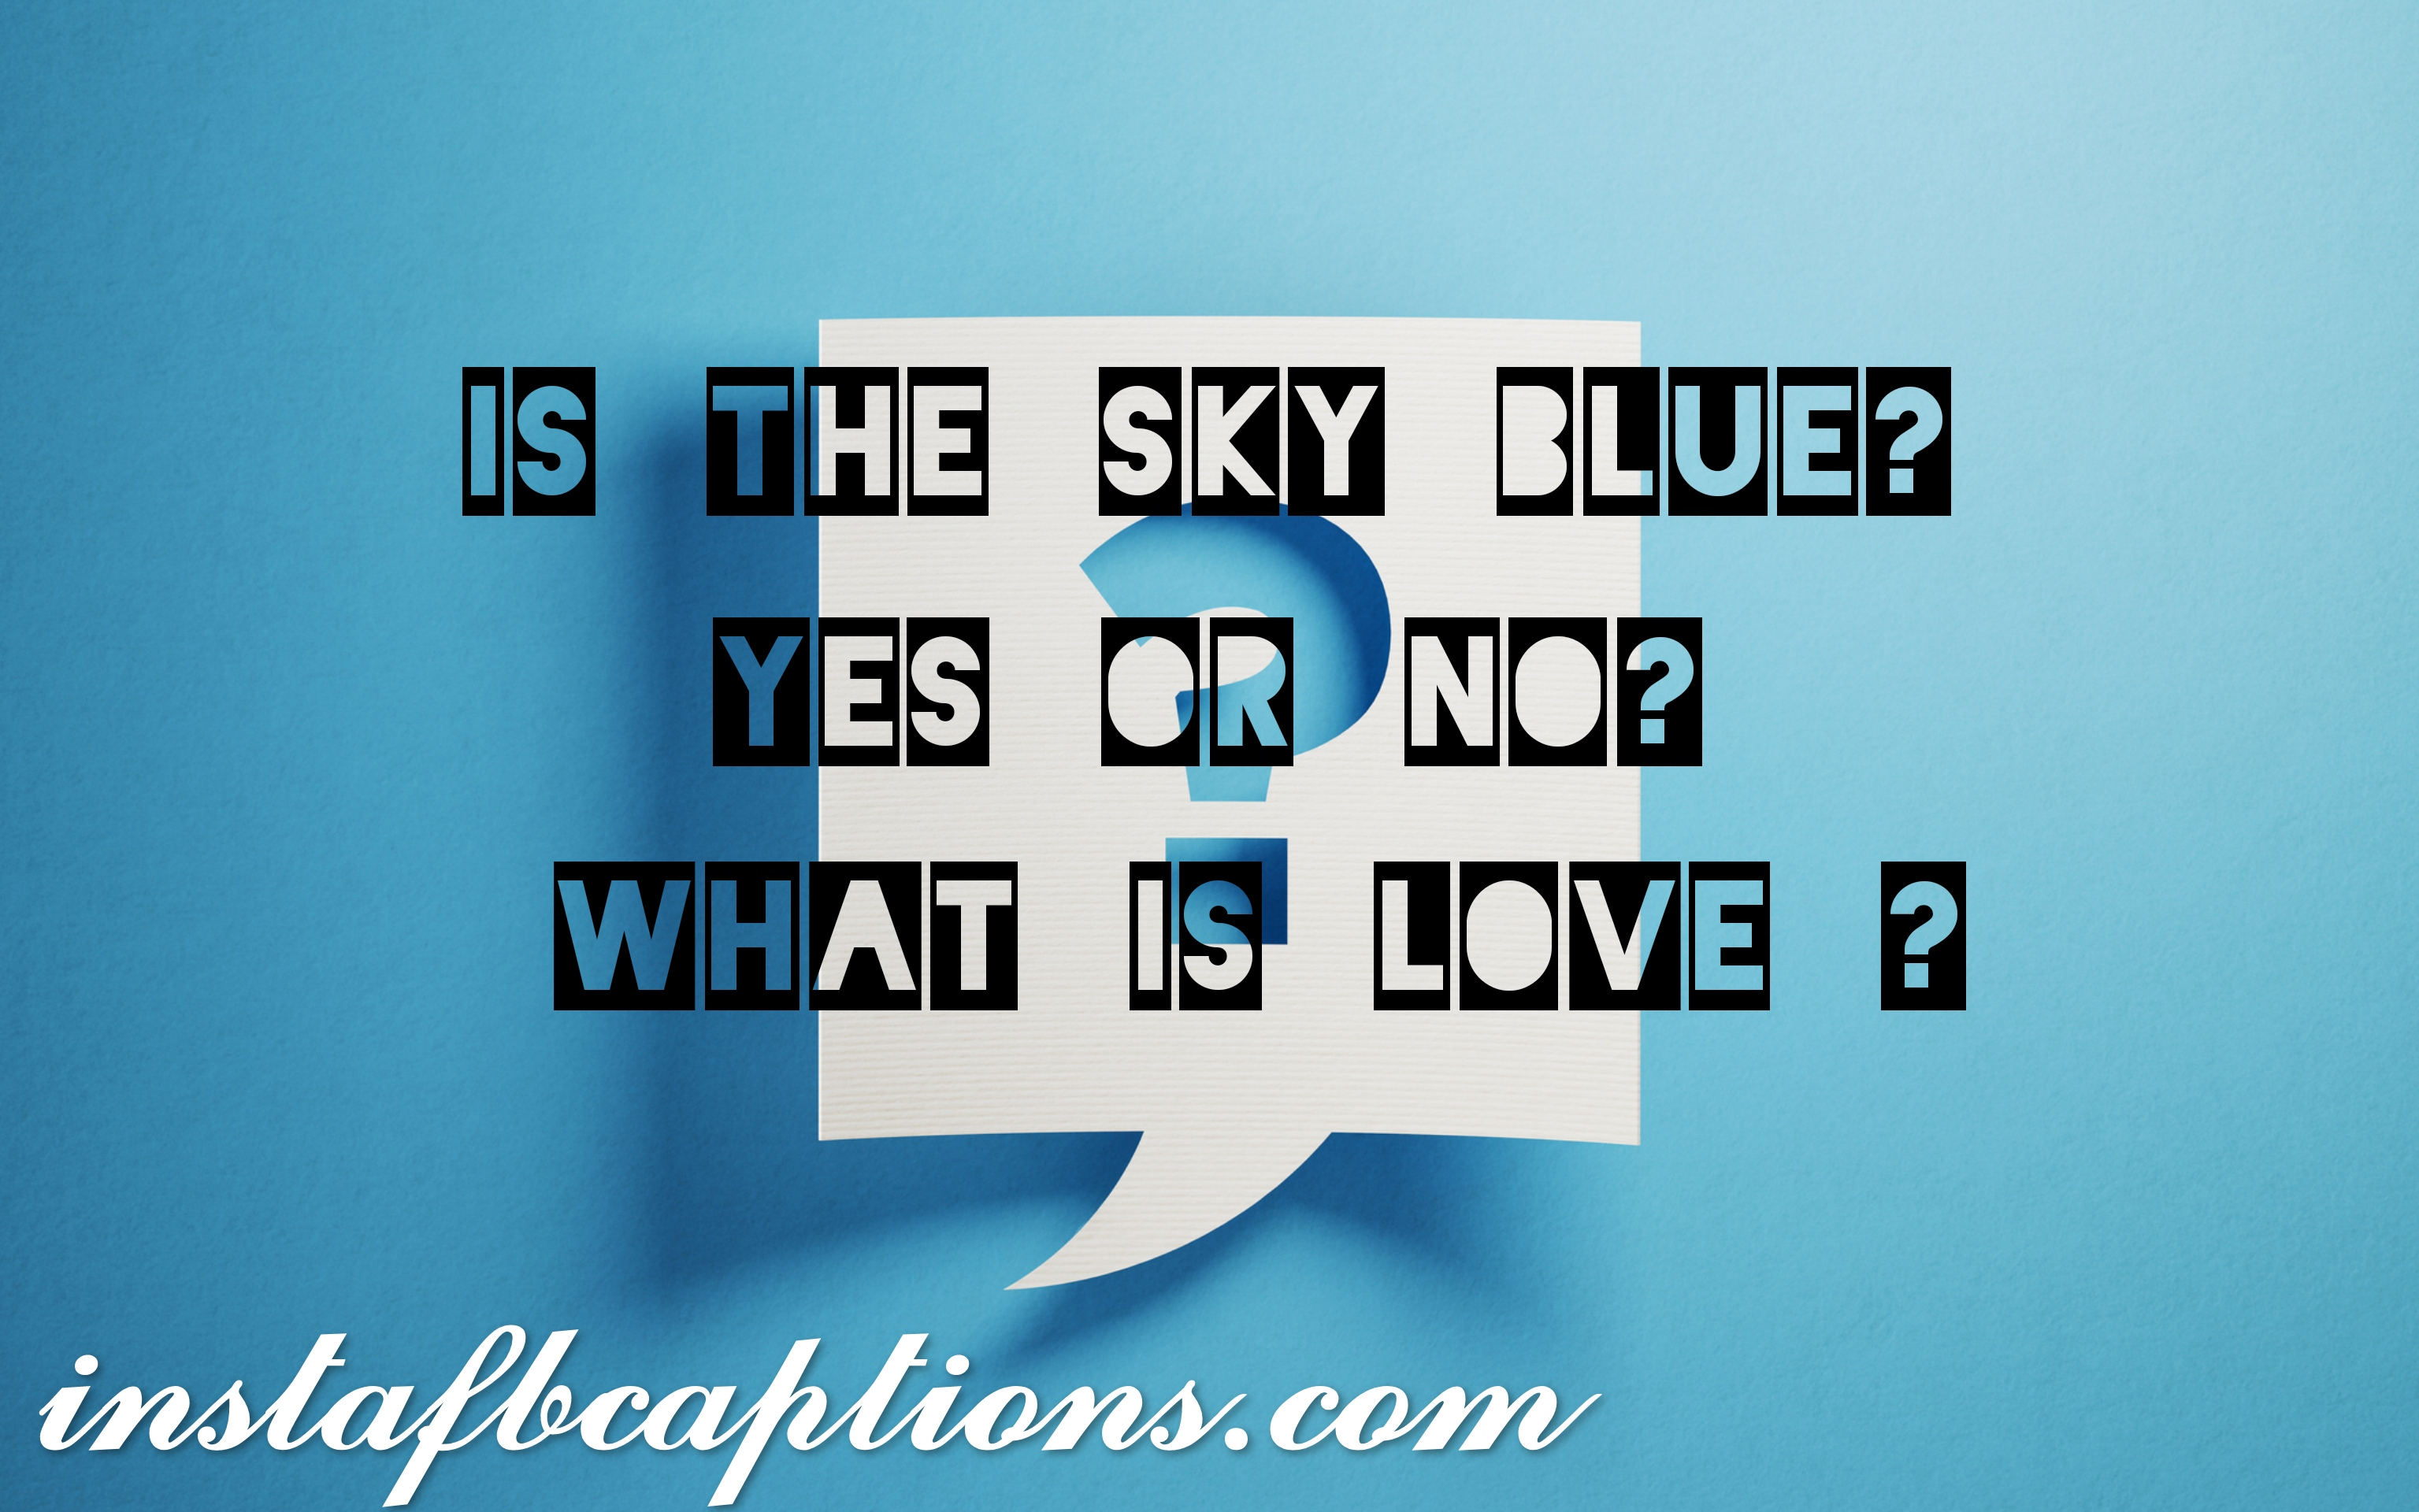 Is The Sky Blue Yes Or No What Is Love  - is the sky blue yes or no what is love - Question Instagram captions || (selfies funny Best)